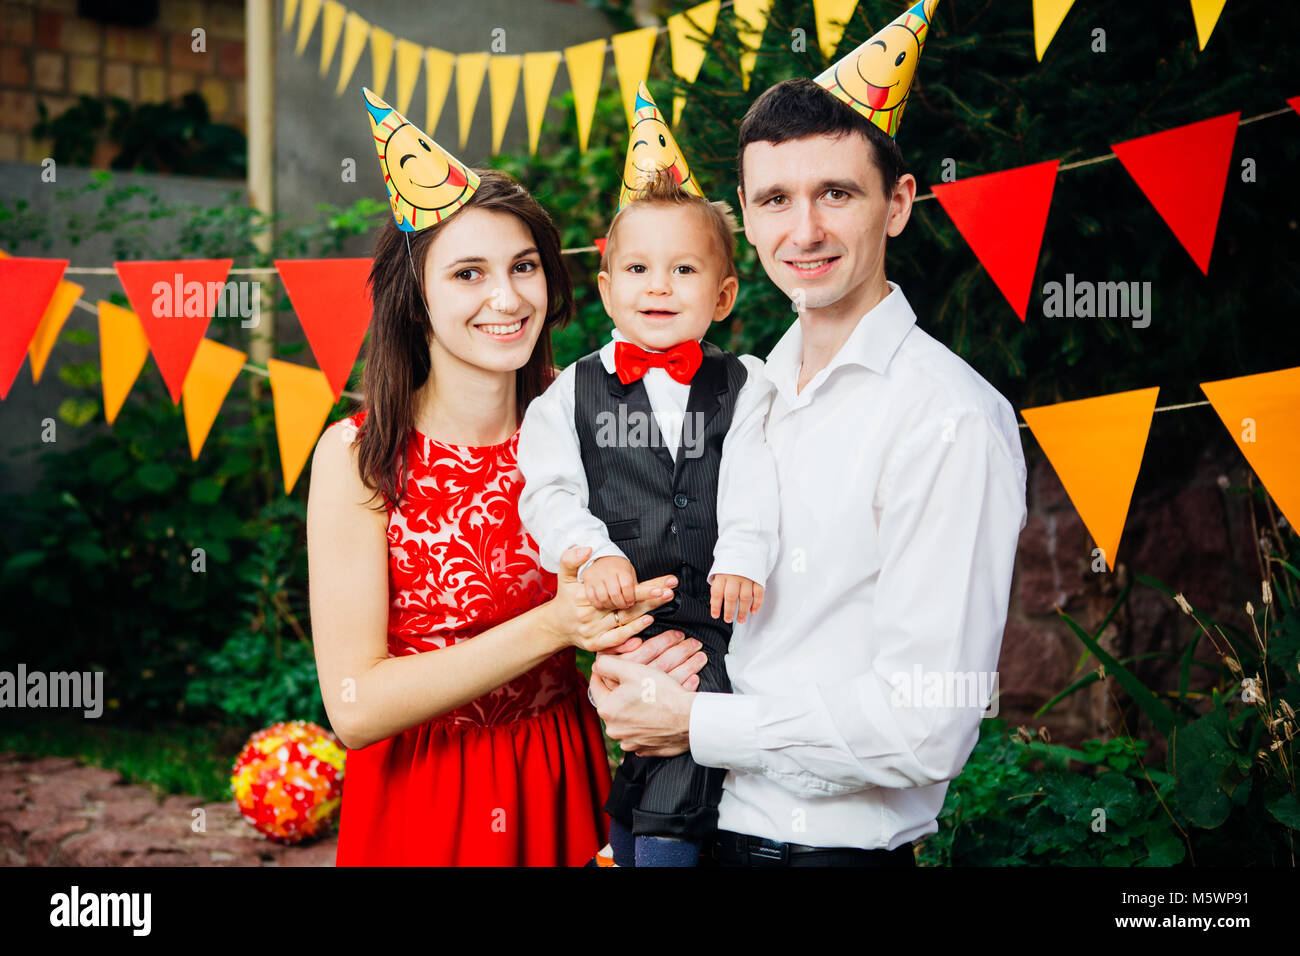 theme children birthday party. Family father and mother holding son of one year on the background of greenery and - Stock Image